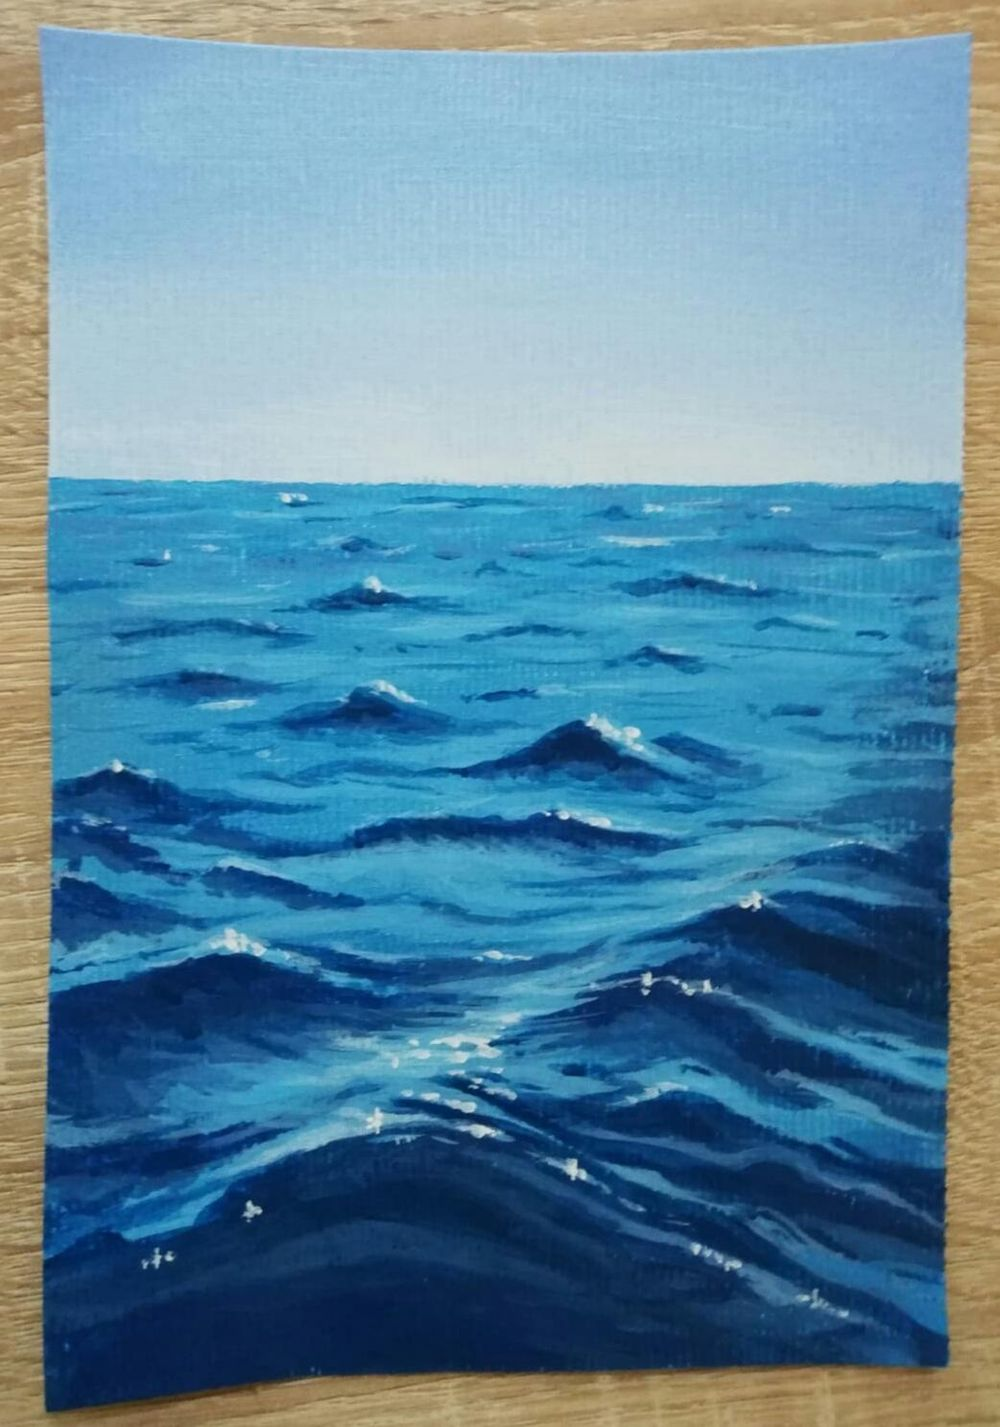 Ocean waves - image 1 - student project